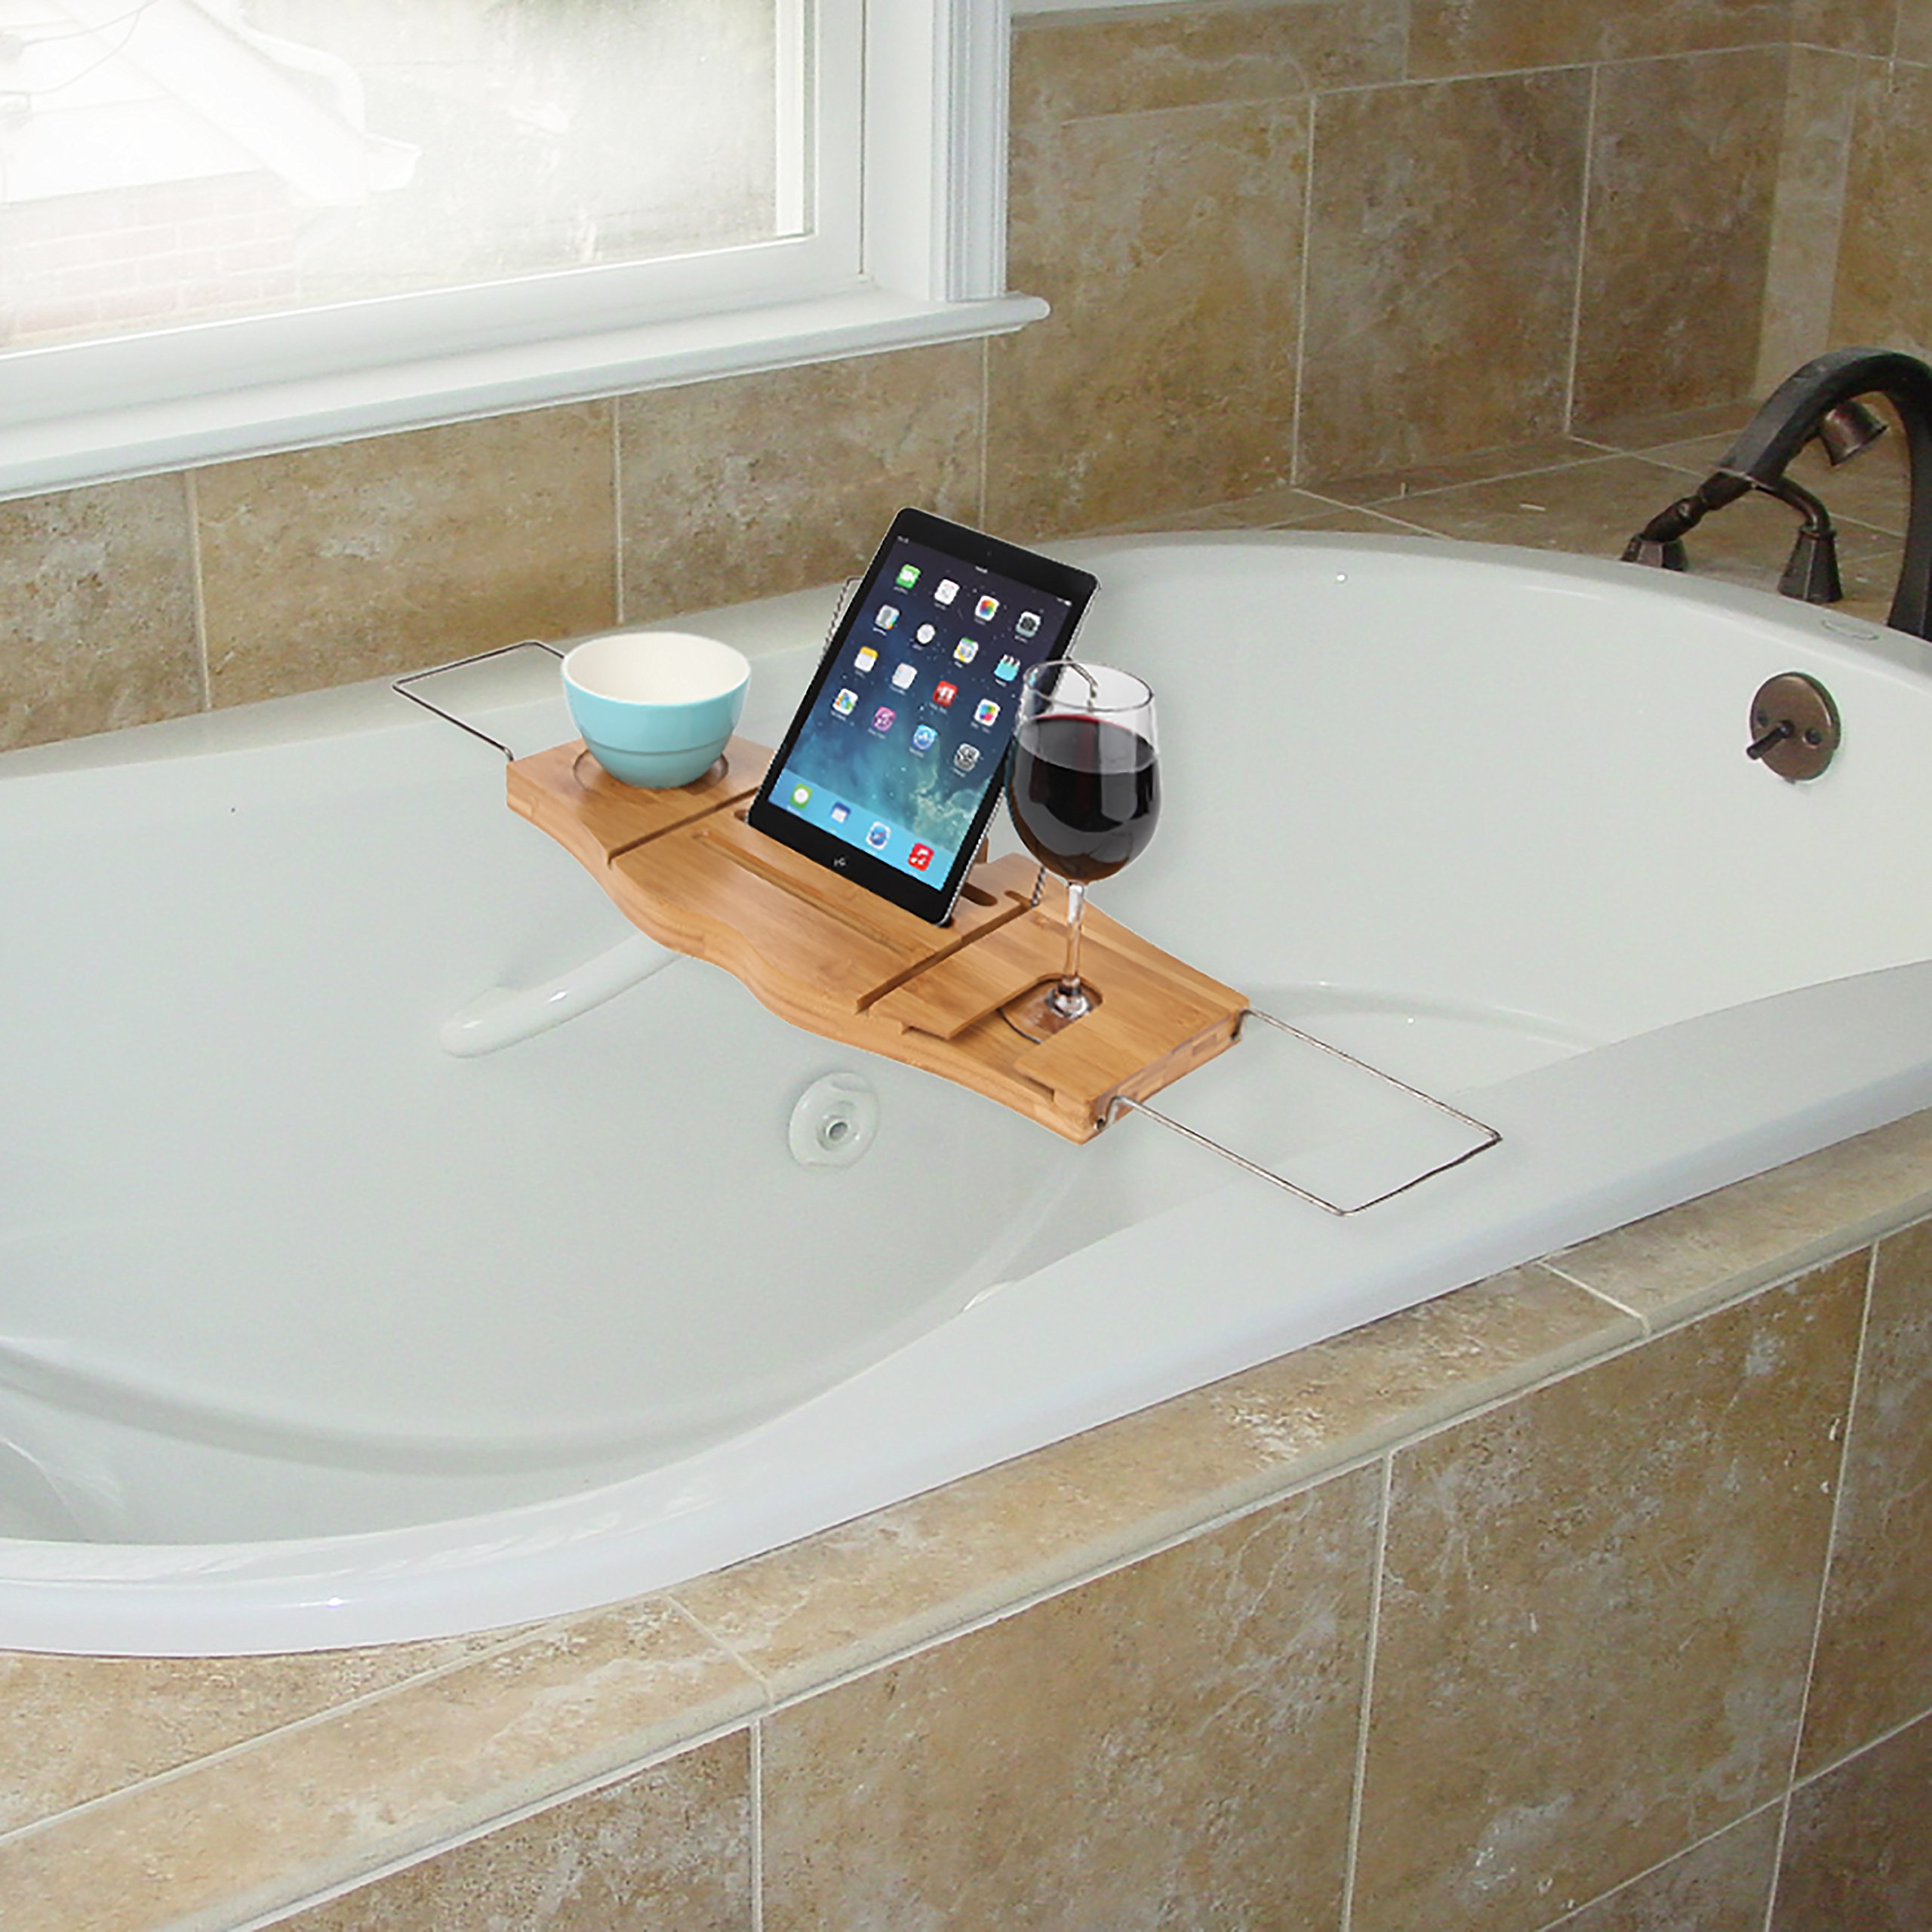 made bathtub tidy expanding tray kitchen smart white stuff bath plus shelf